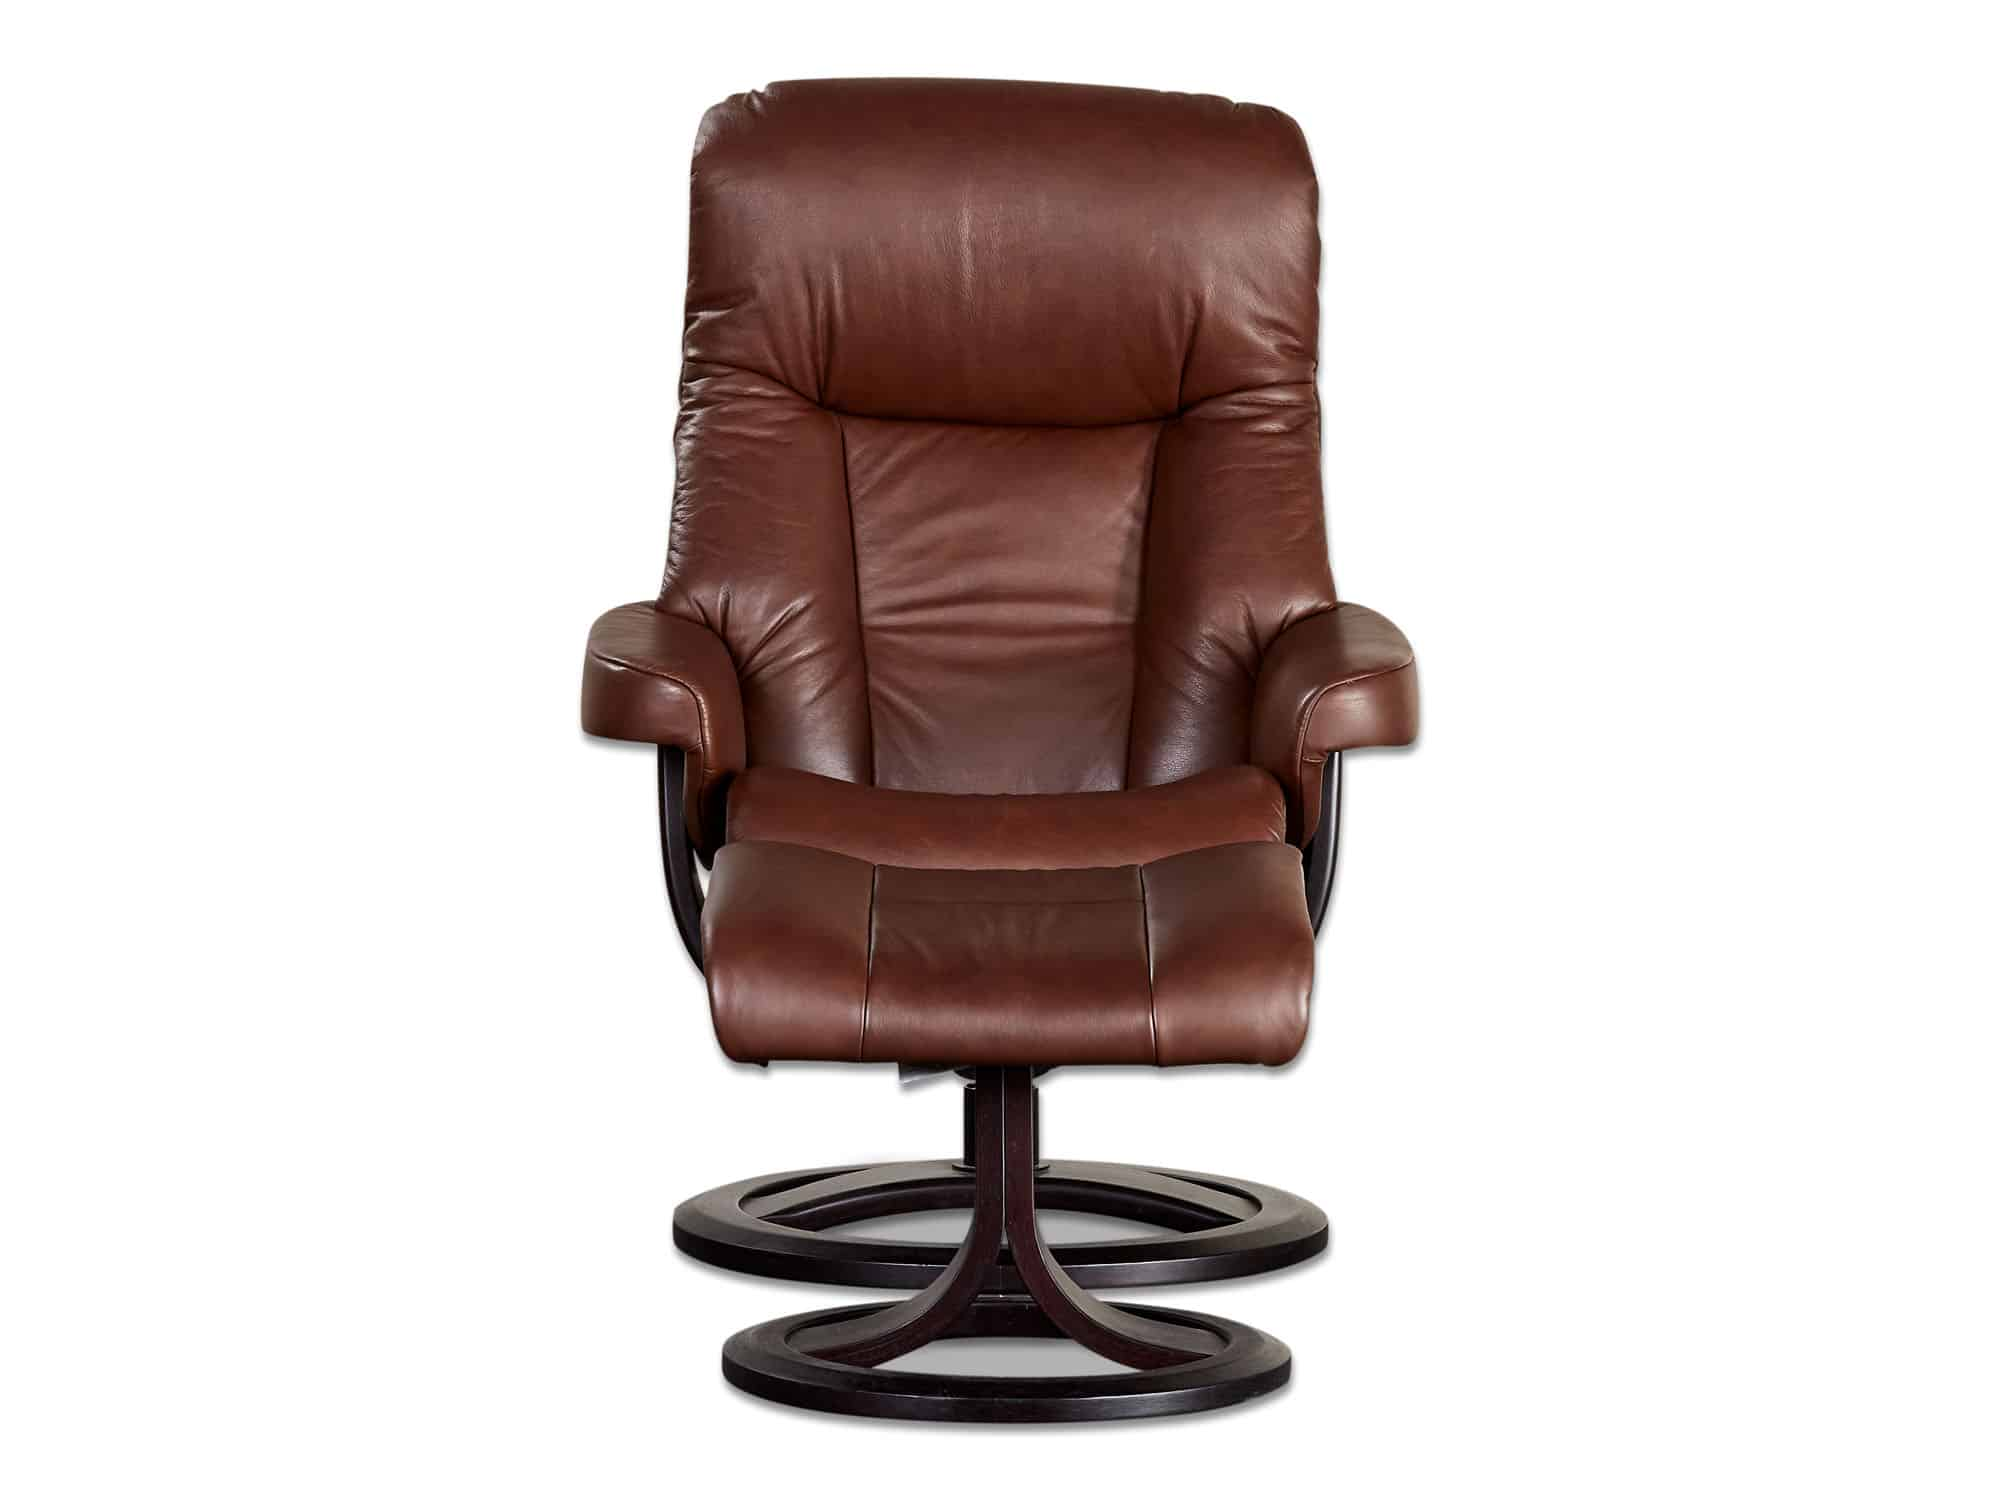 Molde recliner armchair leather